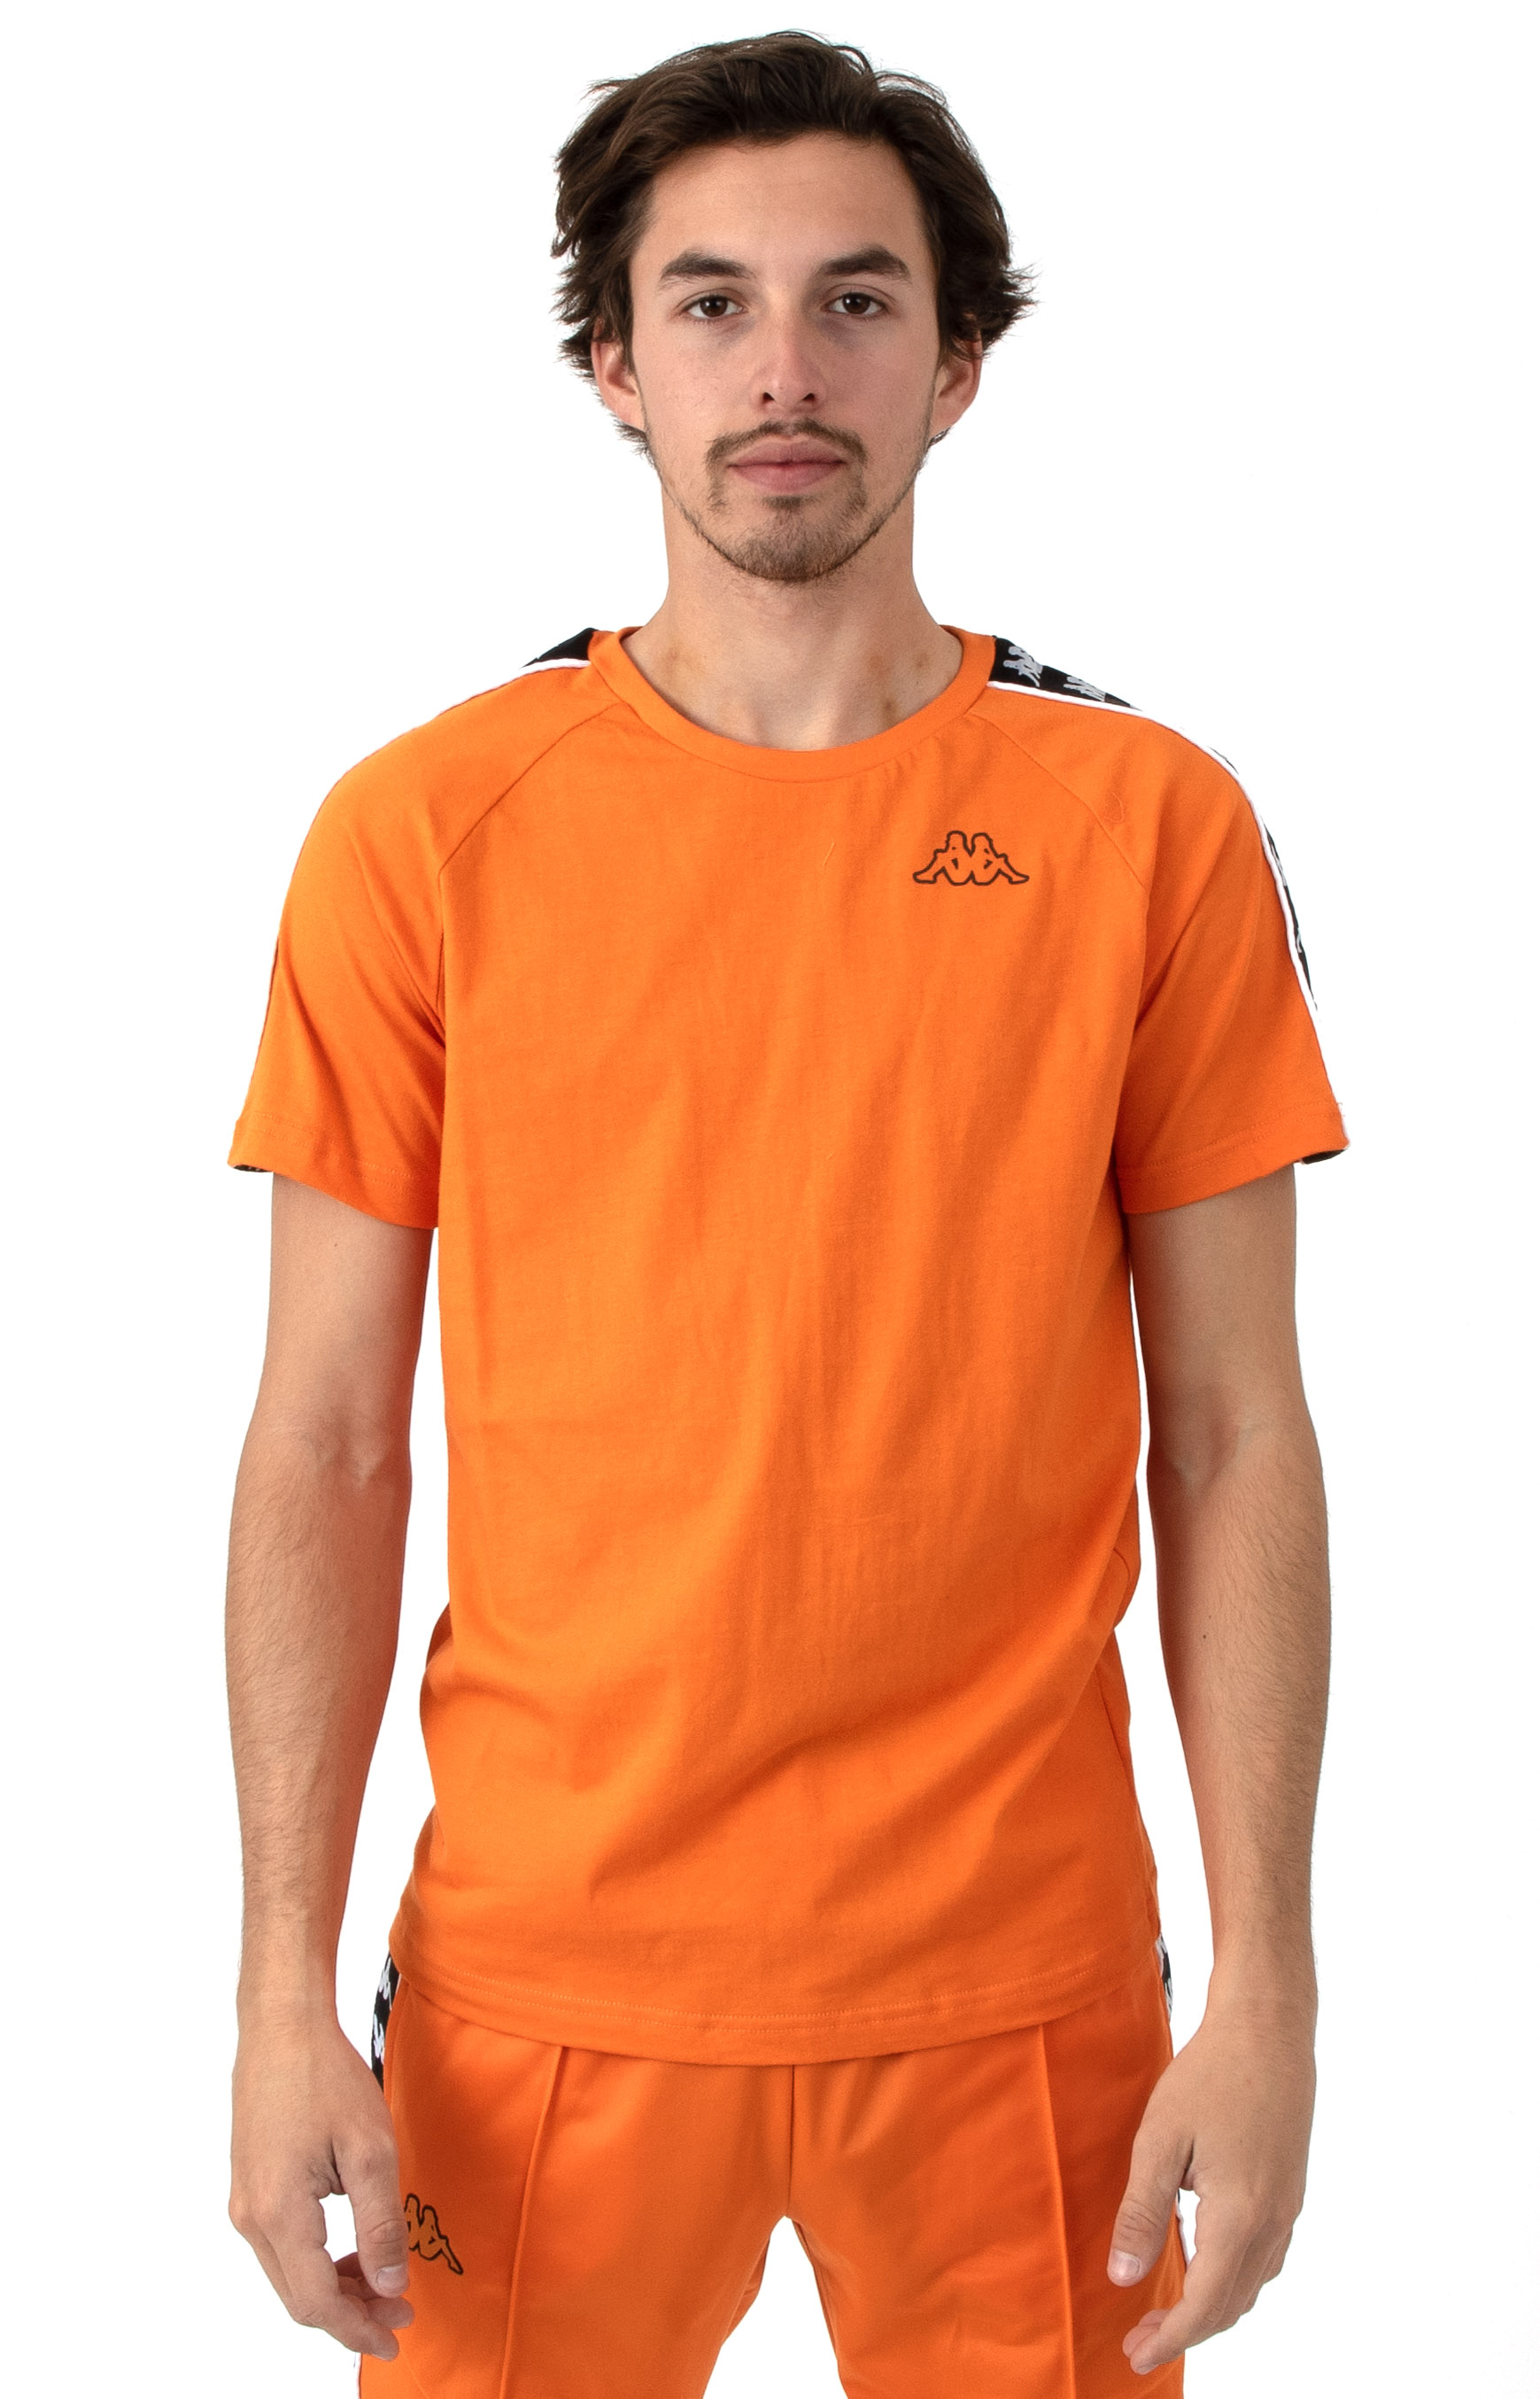 222 Banda Coen Slim T-Shirt - Orange/Black